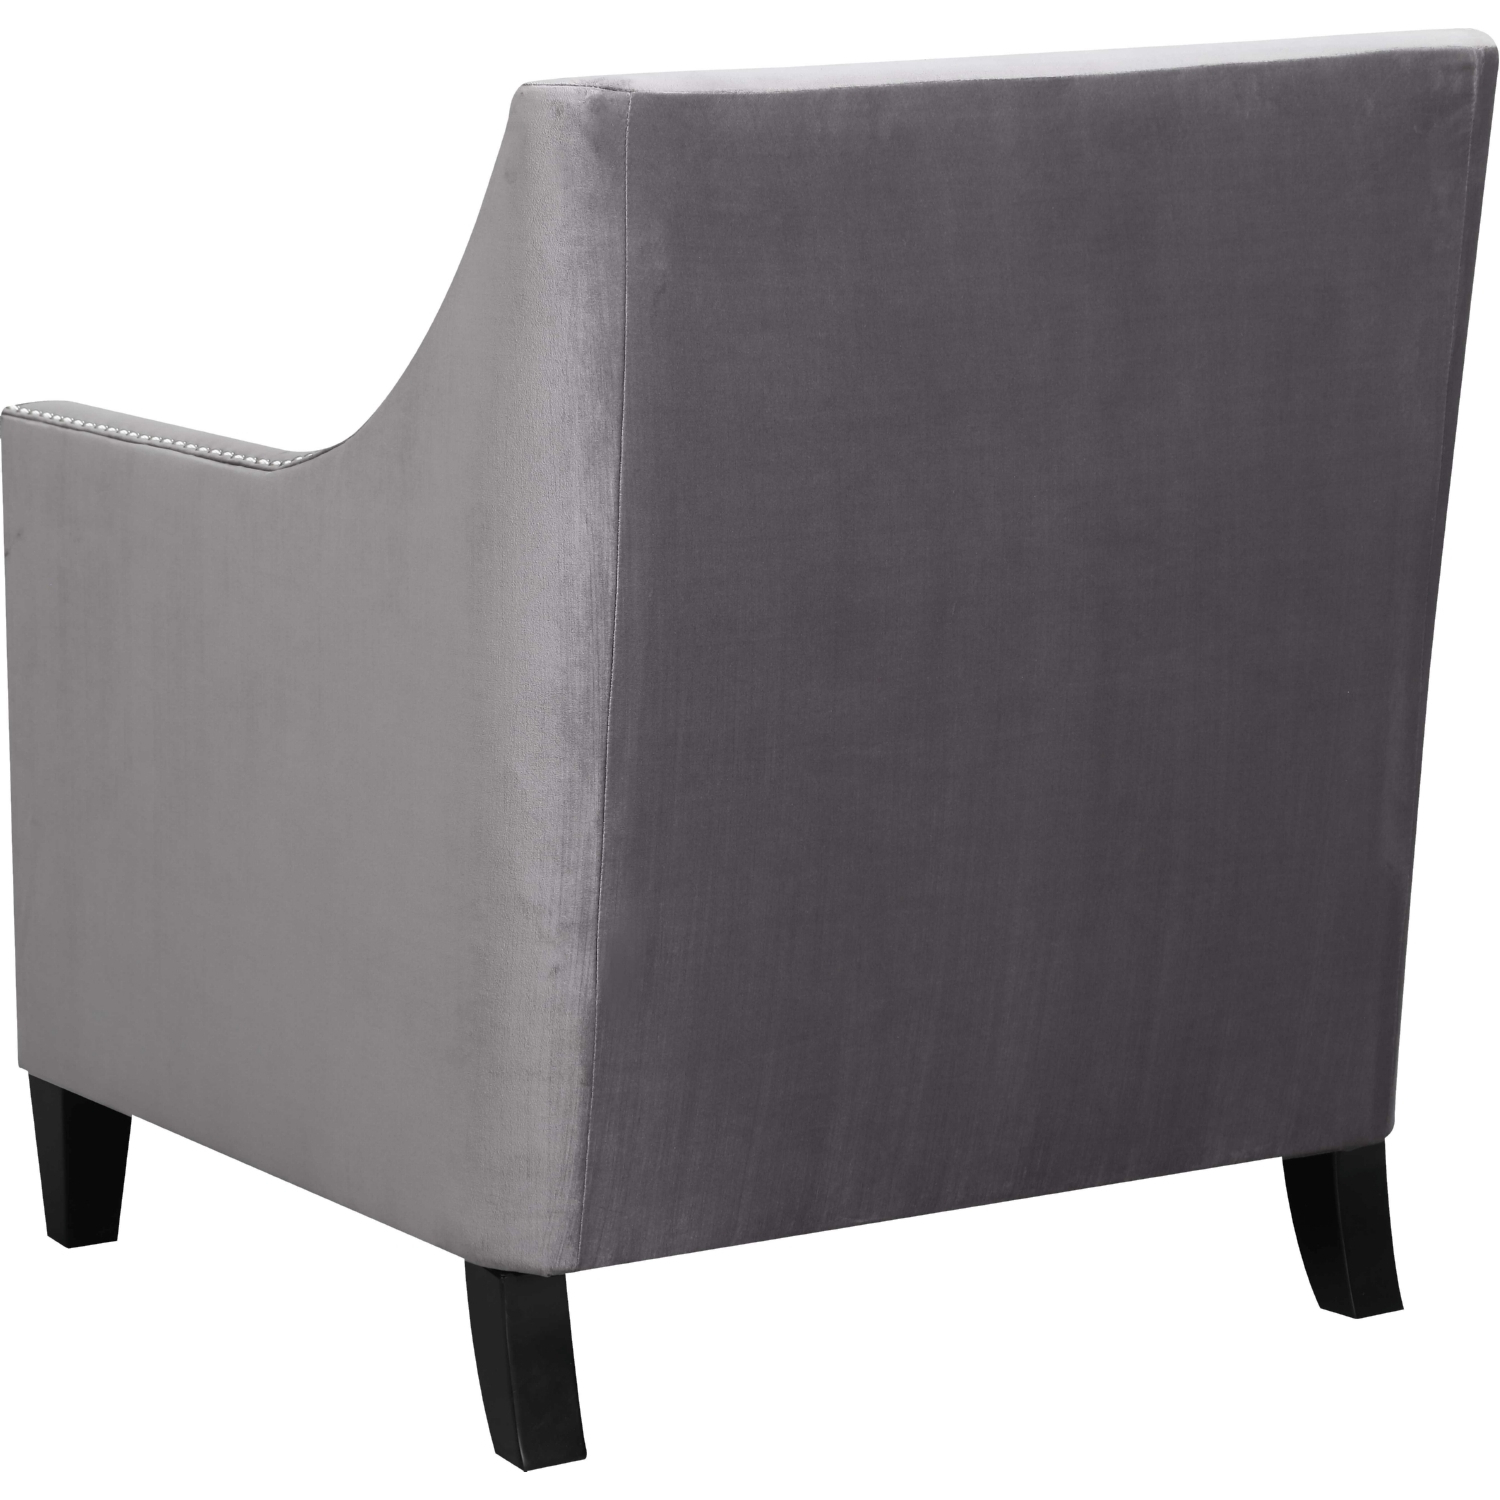 Teagan Accent Chair In Tufted Gun Metal W/ Nailhead Trimpicket House  Furniture Intended For Recent Teagan Sideboards (Gallery 13 of 20)